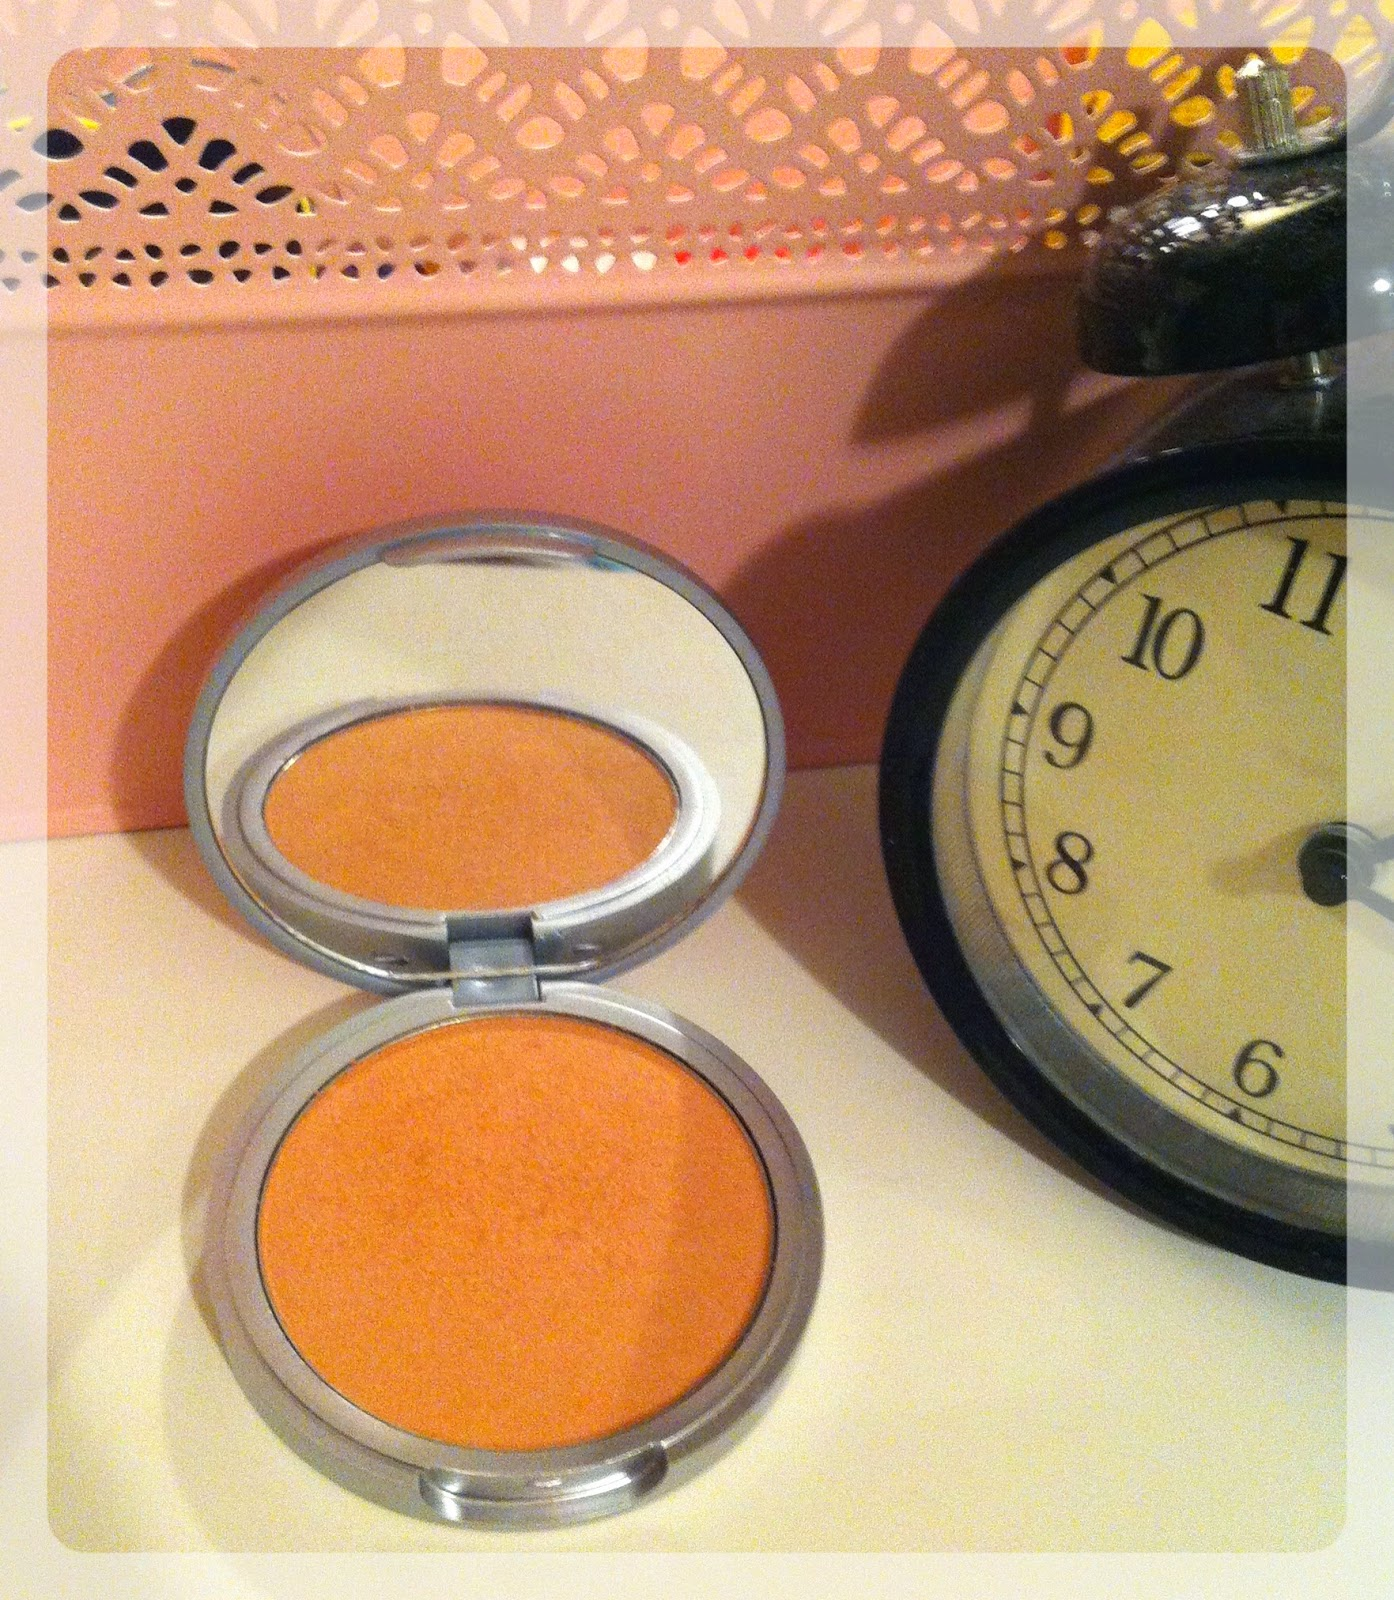 The Balm Cindy Loumanizer